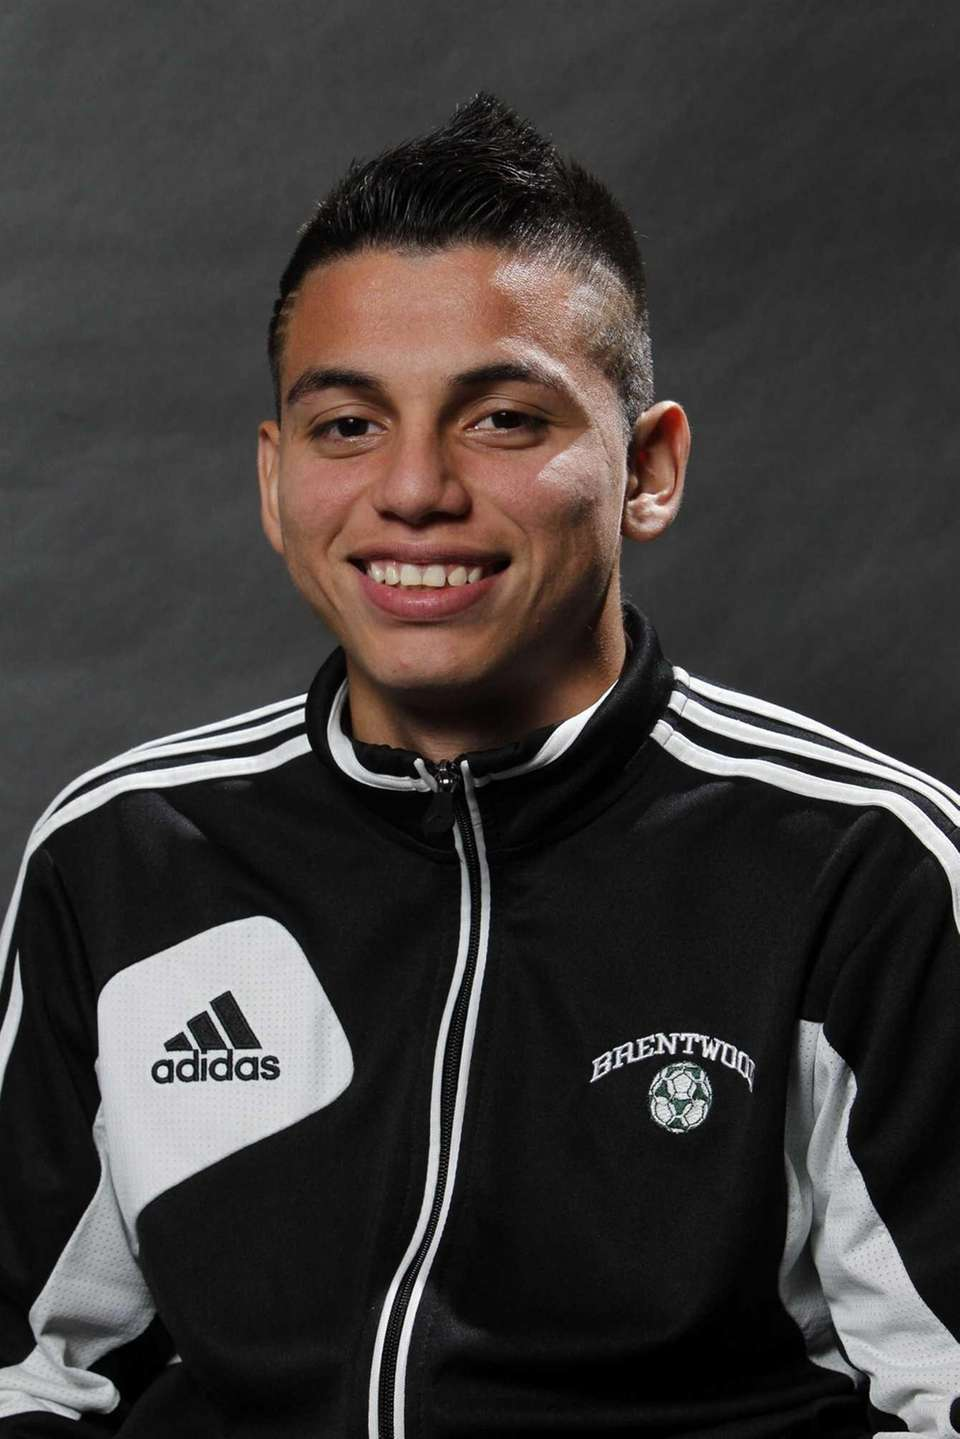 EVER TORRES Brentwood, Forward, Sophomore One of the